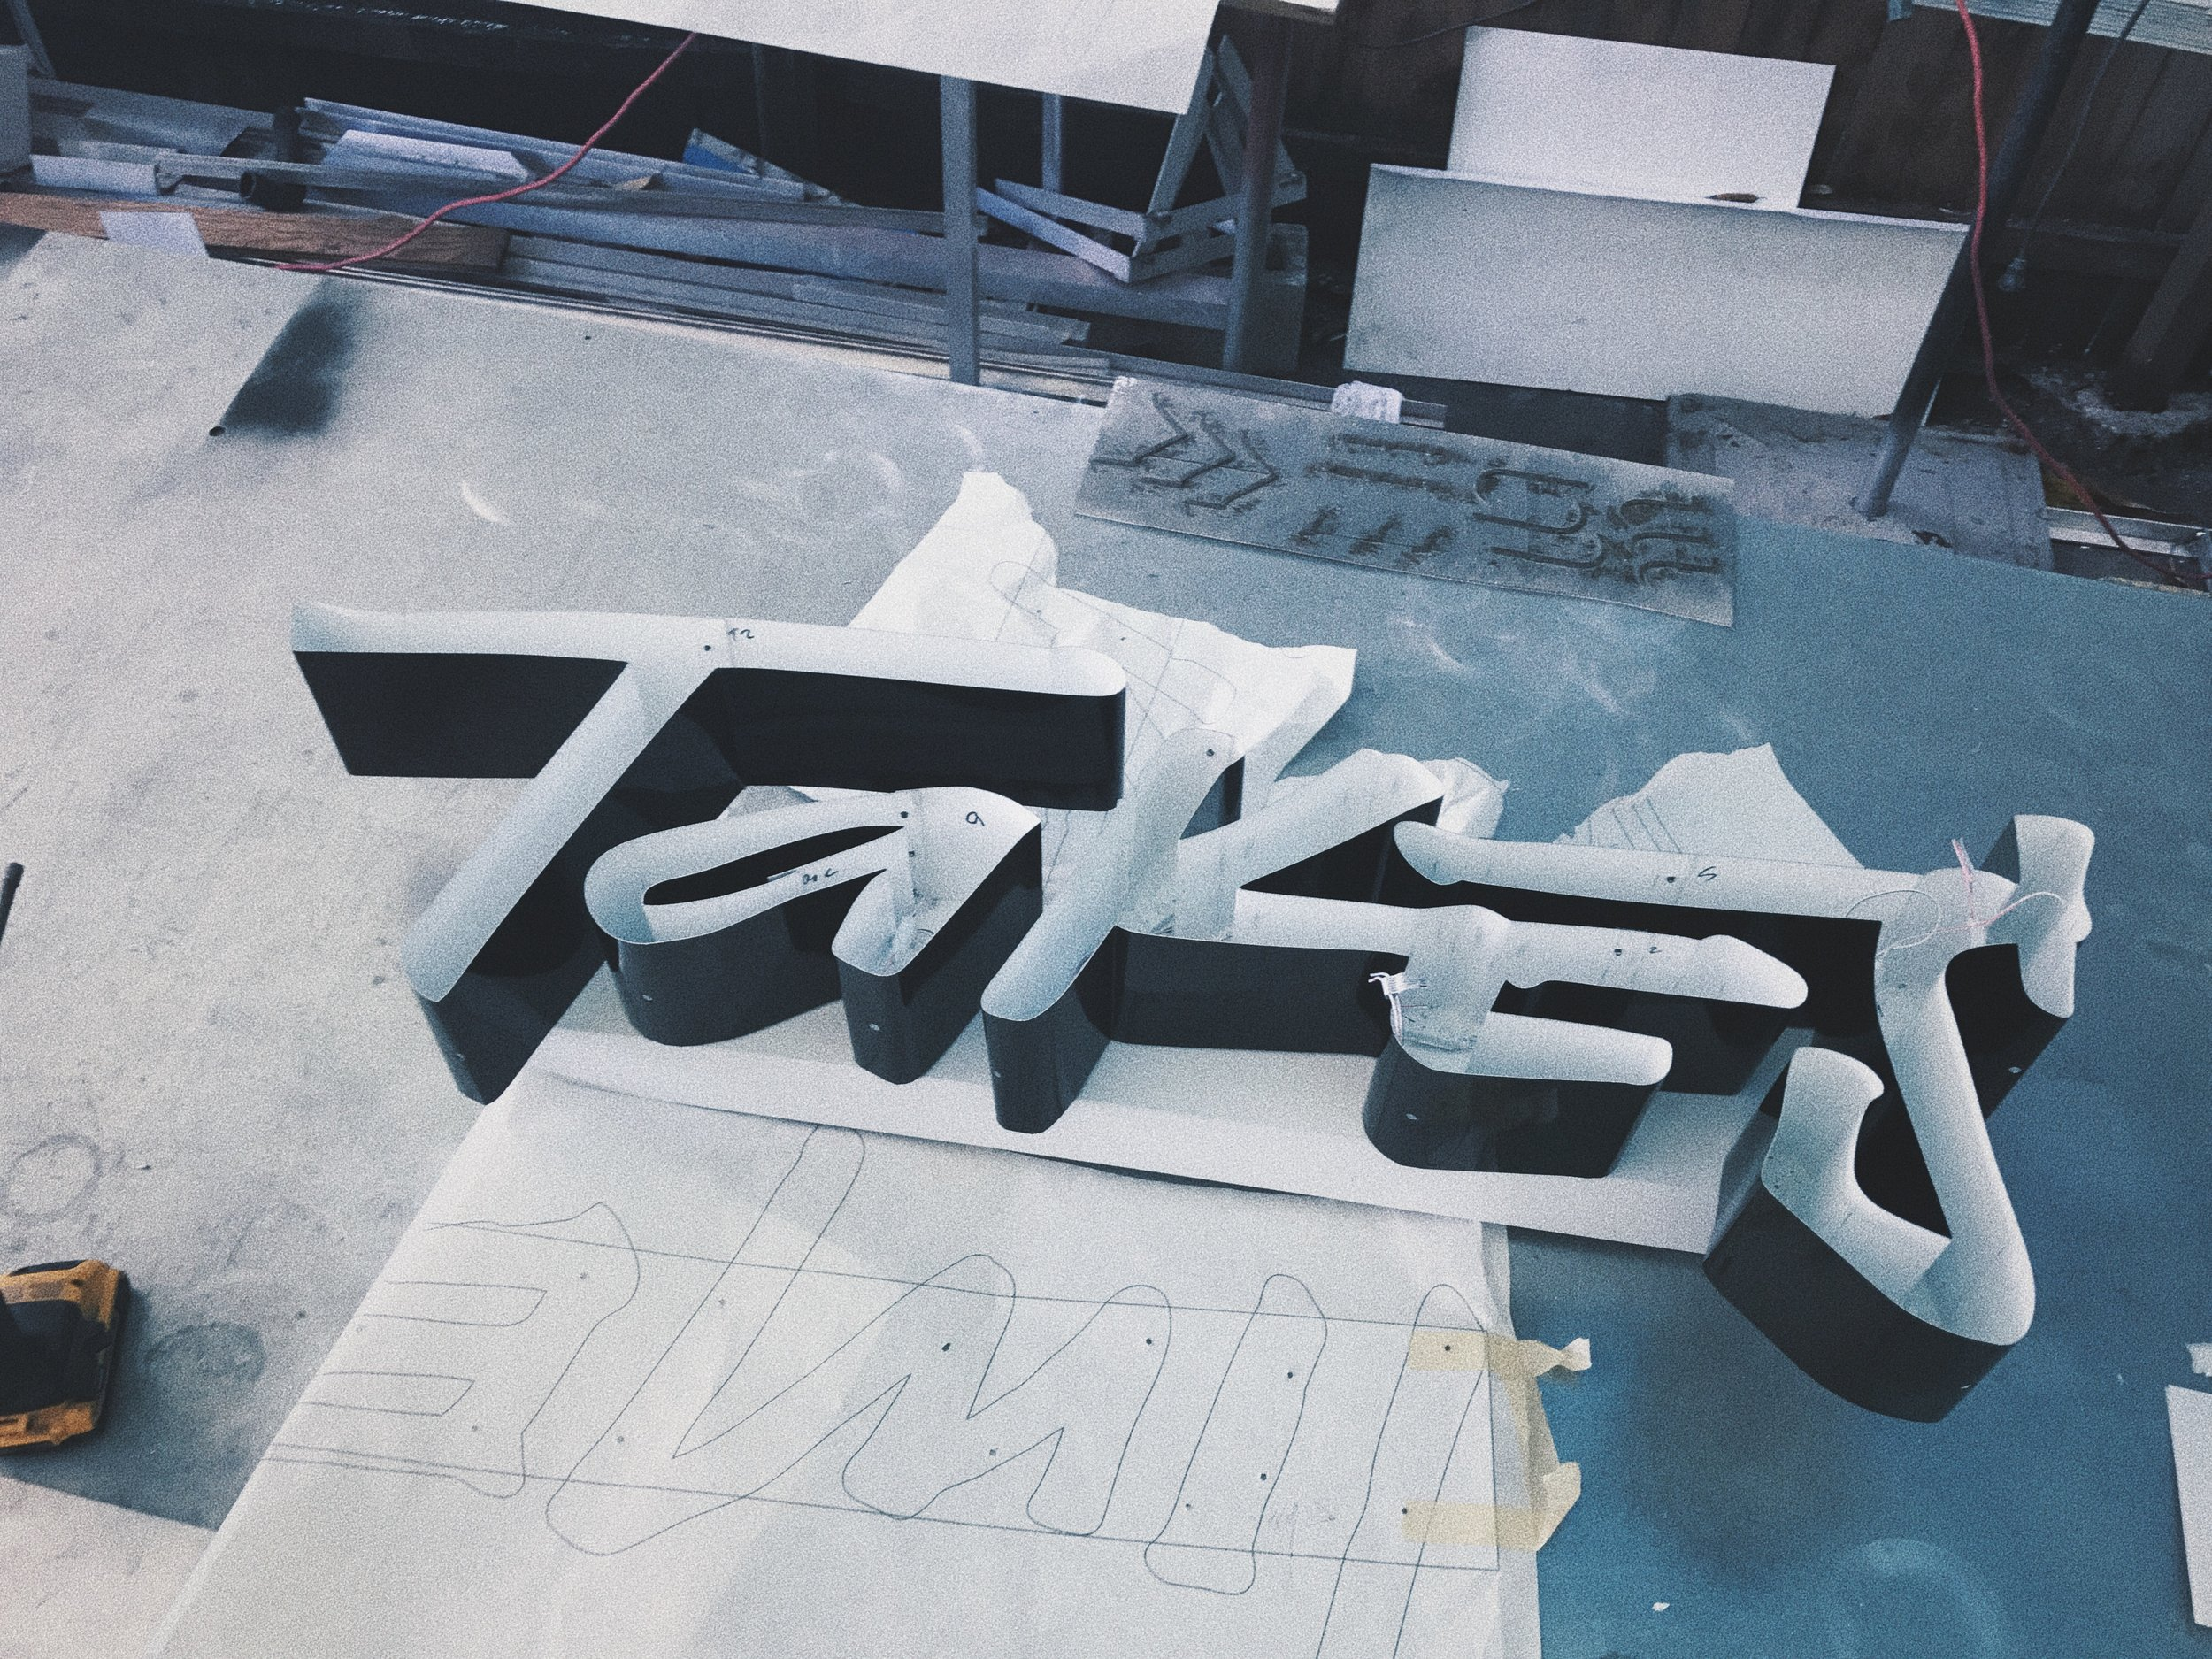 calligraphy as art